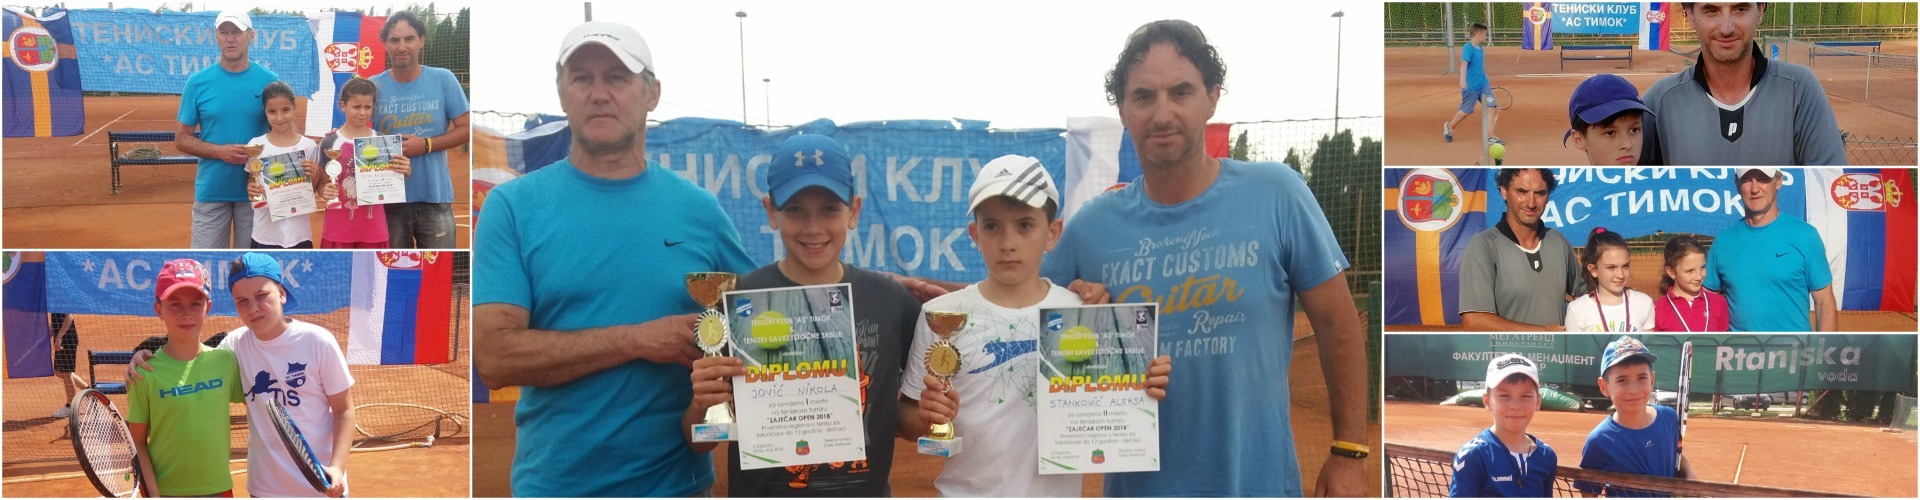 Prvenstvo TSIS do 12 god. ZAJEČAR OPEN 2018 - rezultati